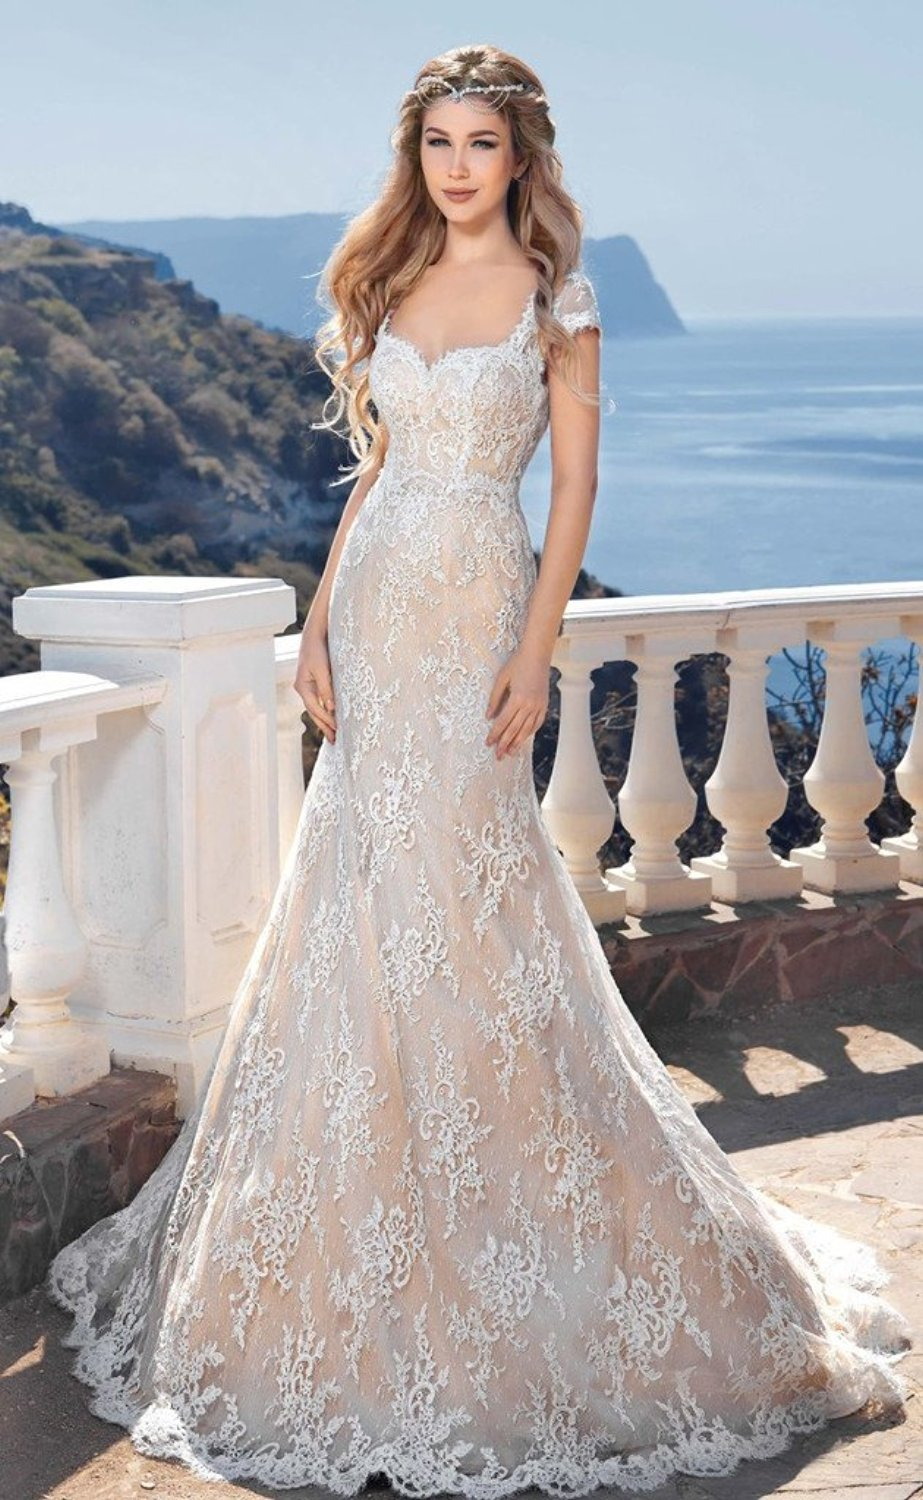 Backless beach wedding gown lace mermaid bride dress for Lace beach wedding dresses